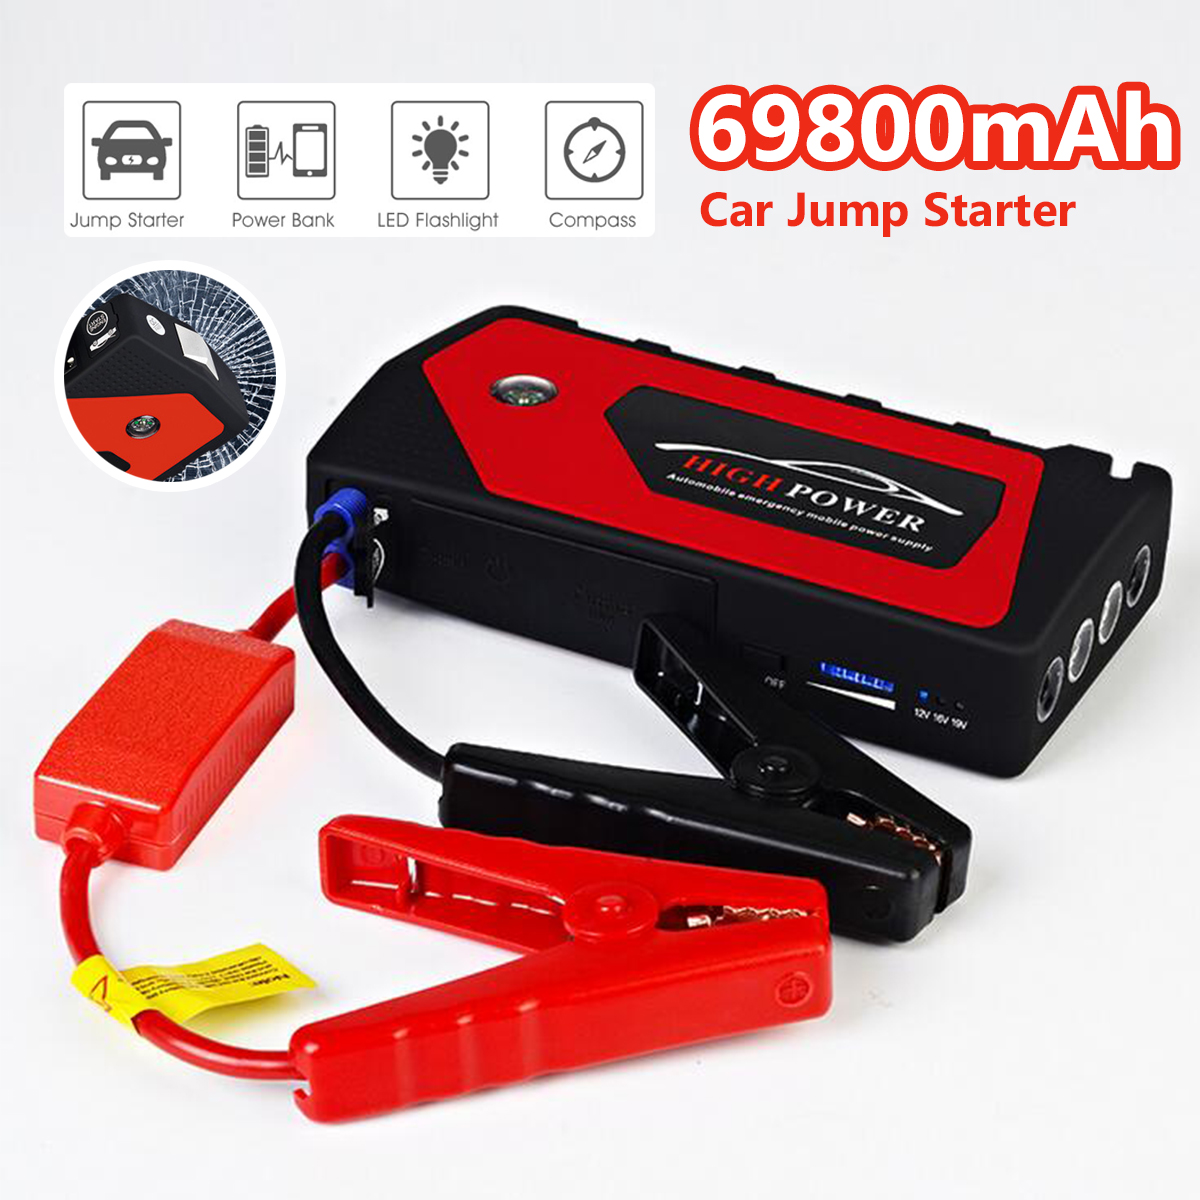 Car Jump Starter Emergency 69800mAh 12V Starting Device 4USB SOS LED Light Mobile Power Bank Car Charger For Car Battery Booster 12v mini portable 82800mah led car jump starter engine auto emergency starting device power bank car phone charger with 4usb